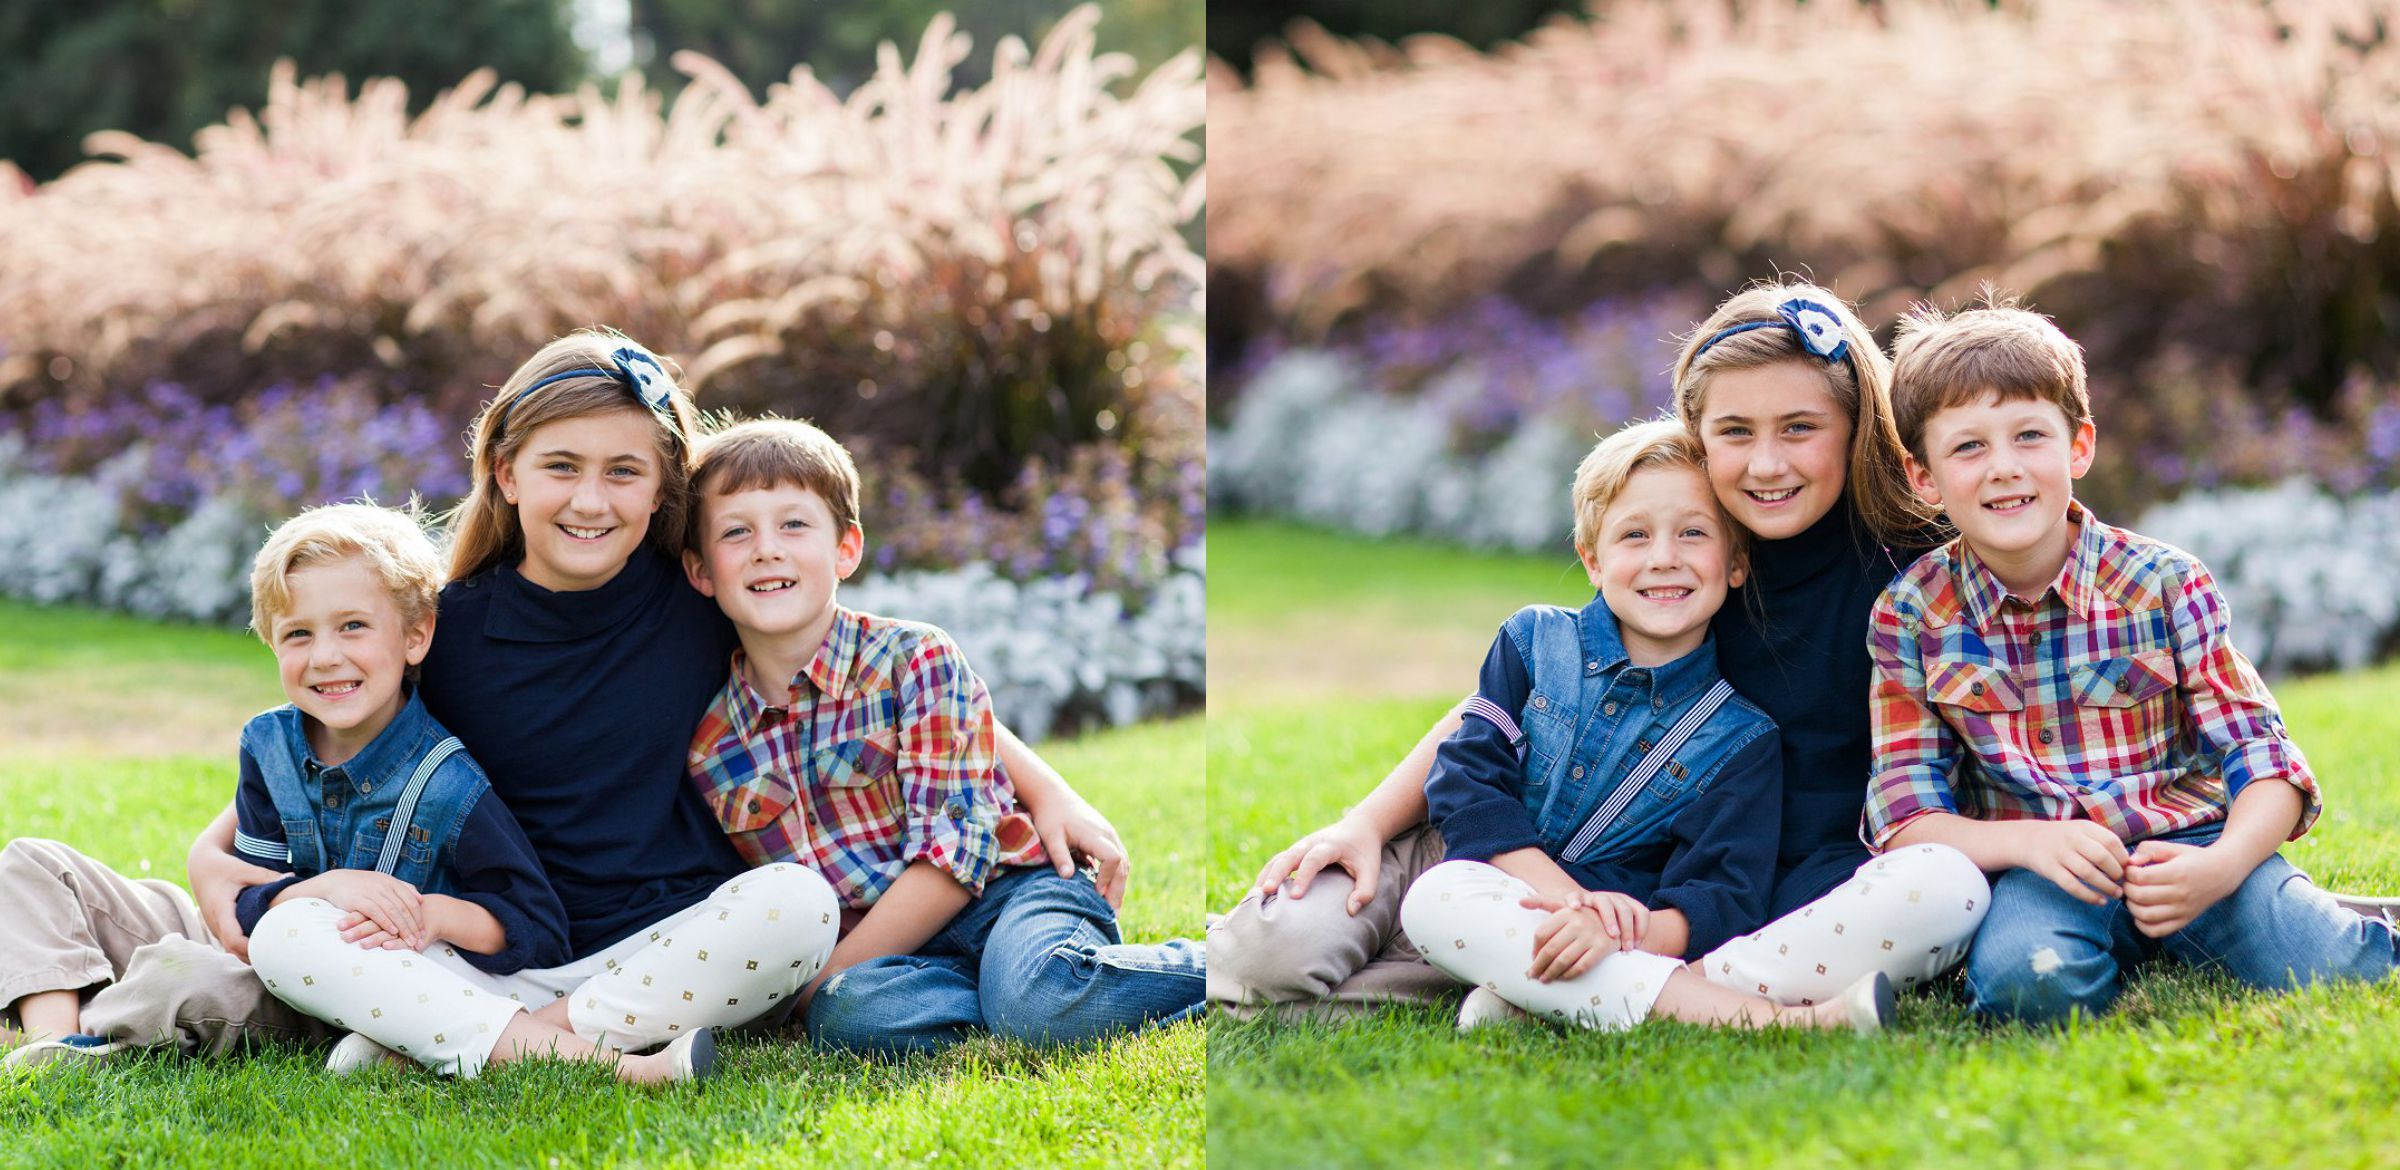 49-Denver Family Photography.jpg